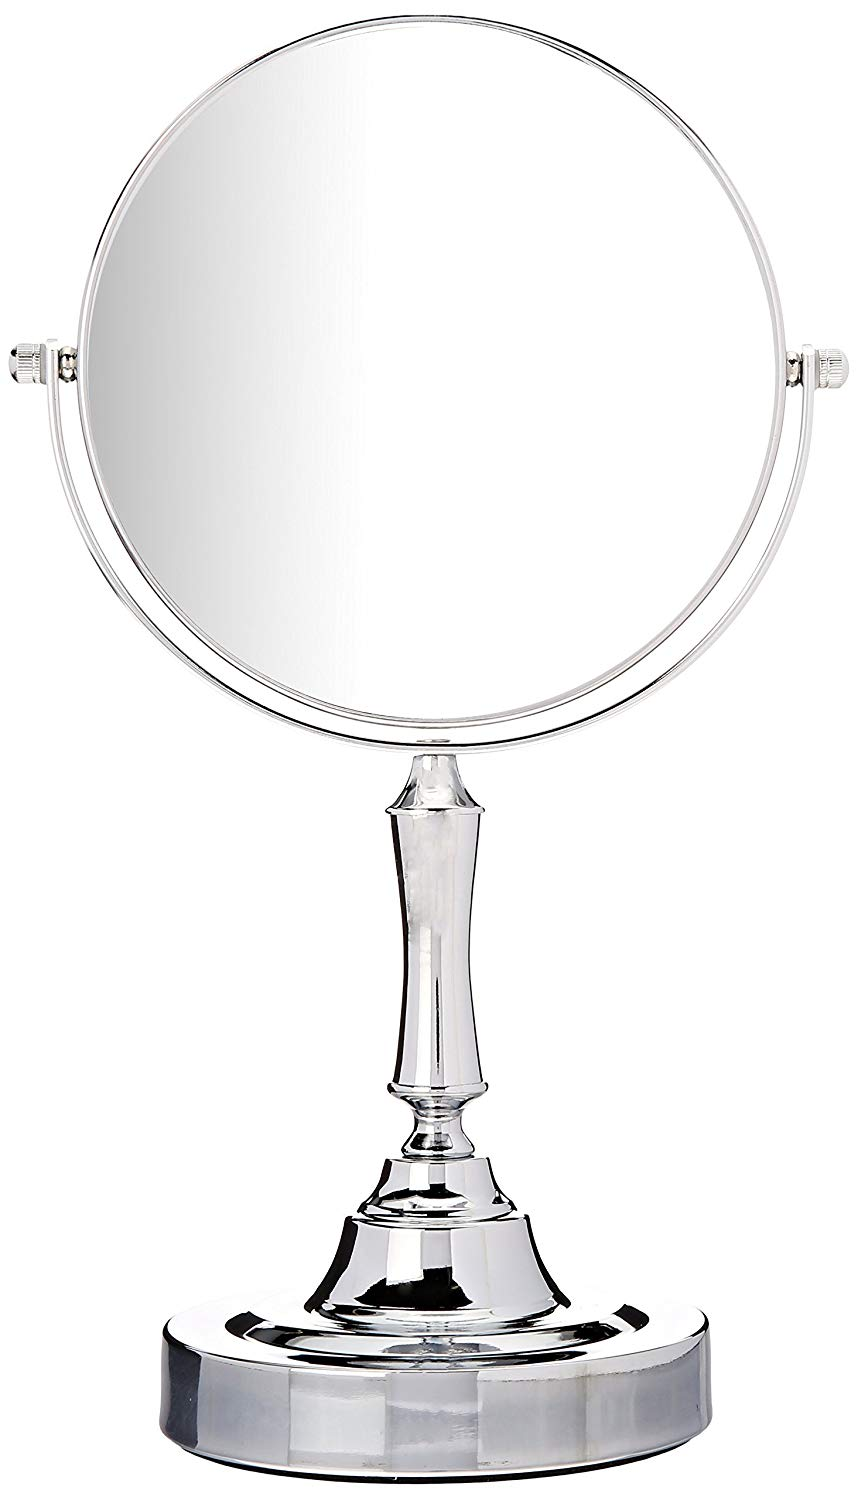 Vanity Mirror on amazon that's portable and fits on your tabletop